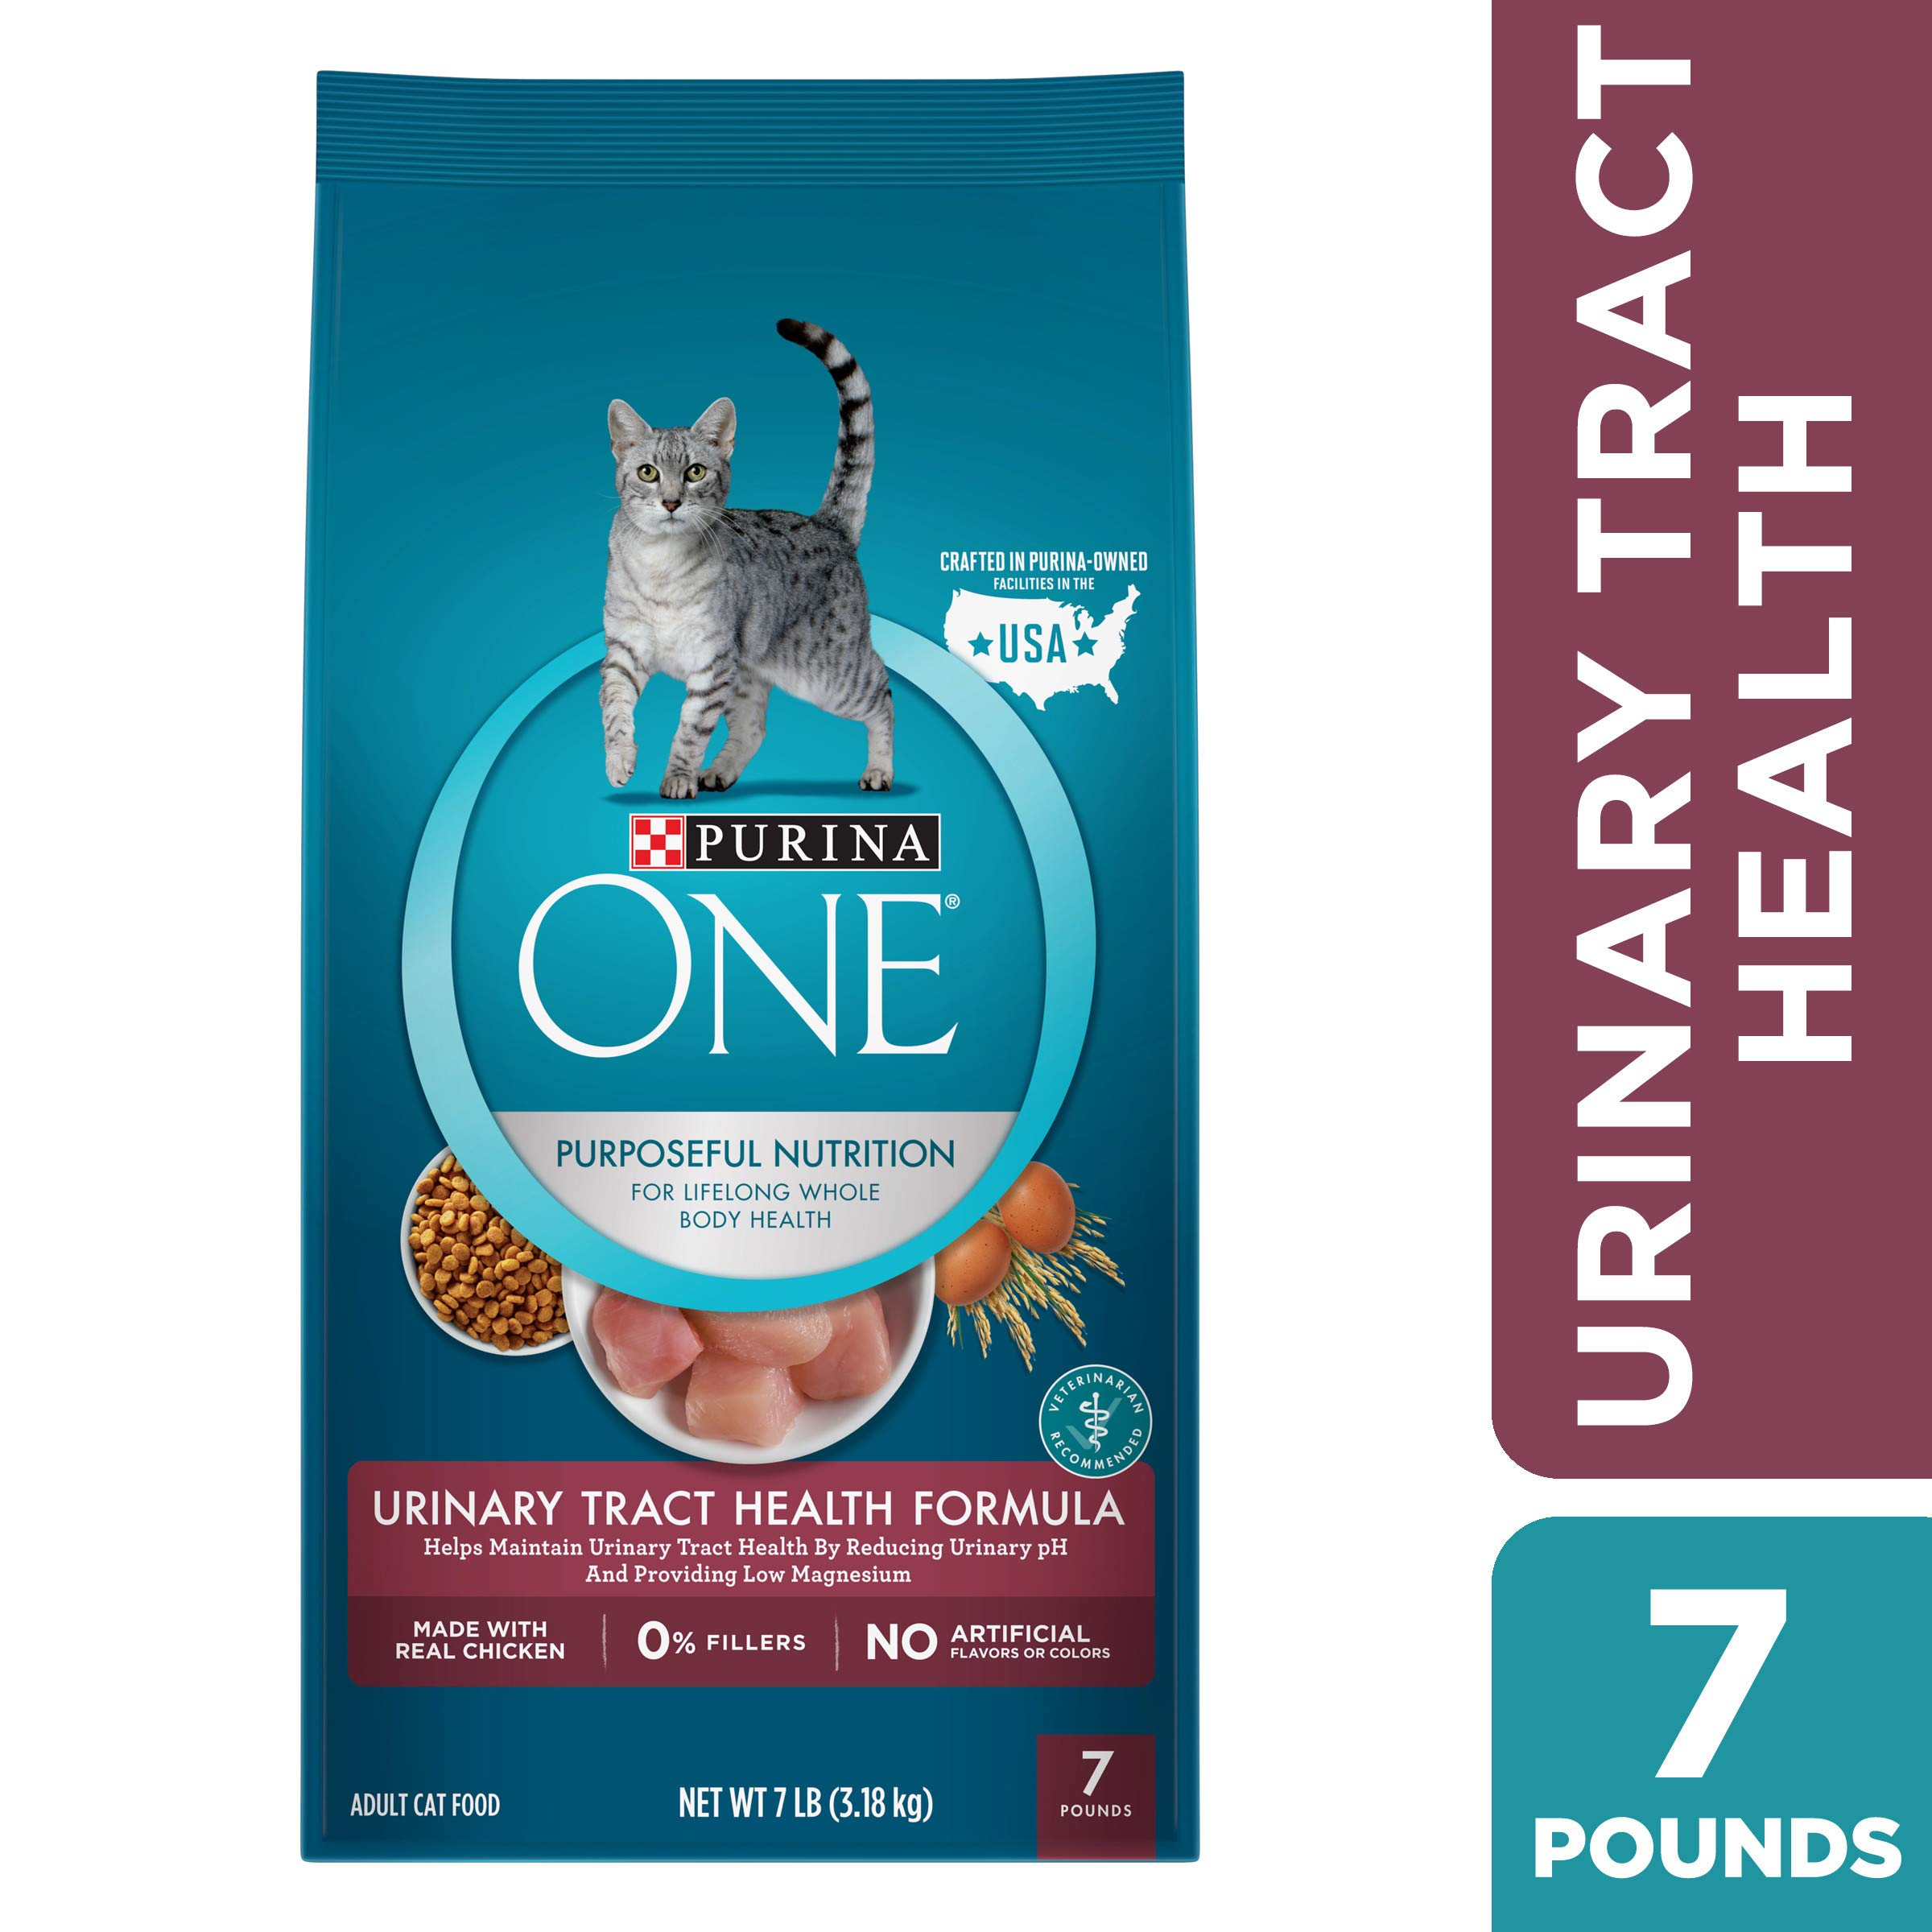 Purina ONE Urinary Tract Health Dry Cat Food, Urinary Tract Health Formula - 7 lb. Bag by Purina ONE